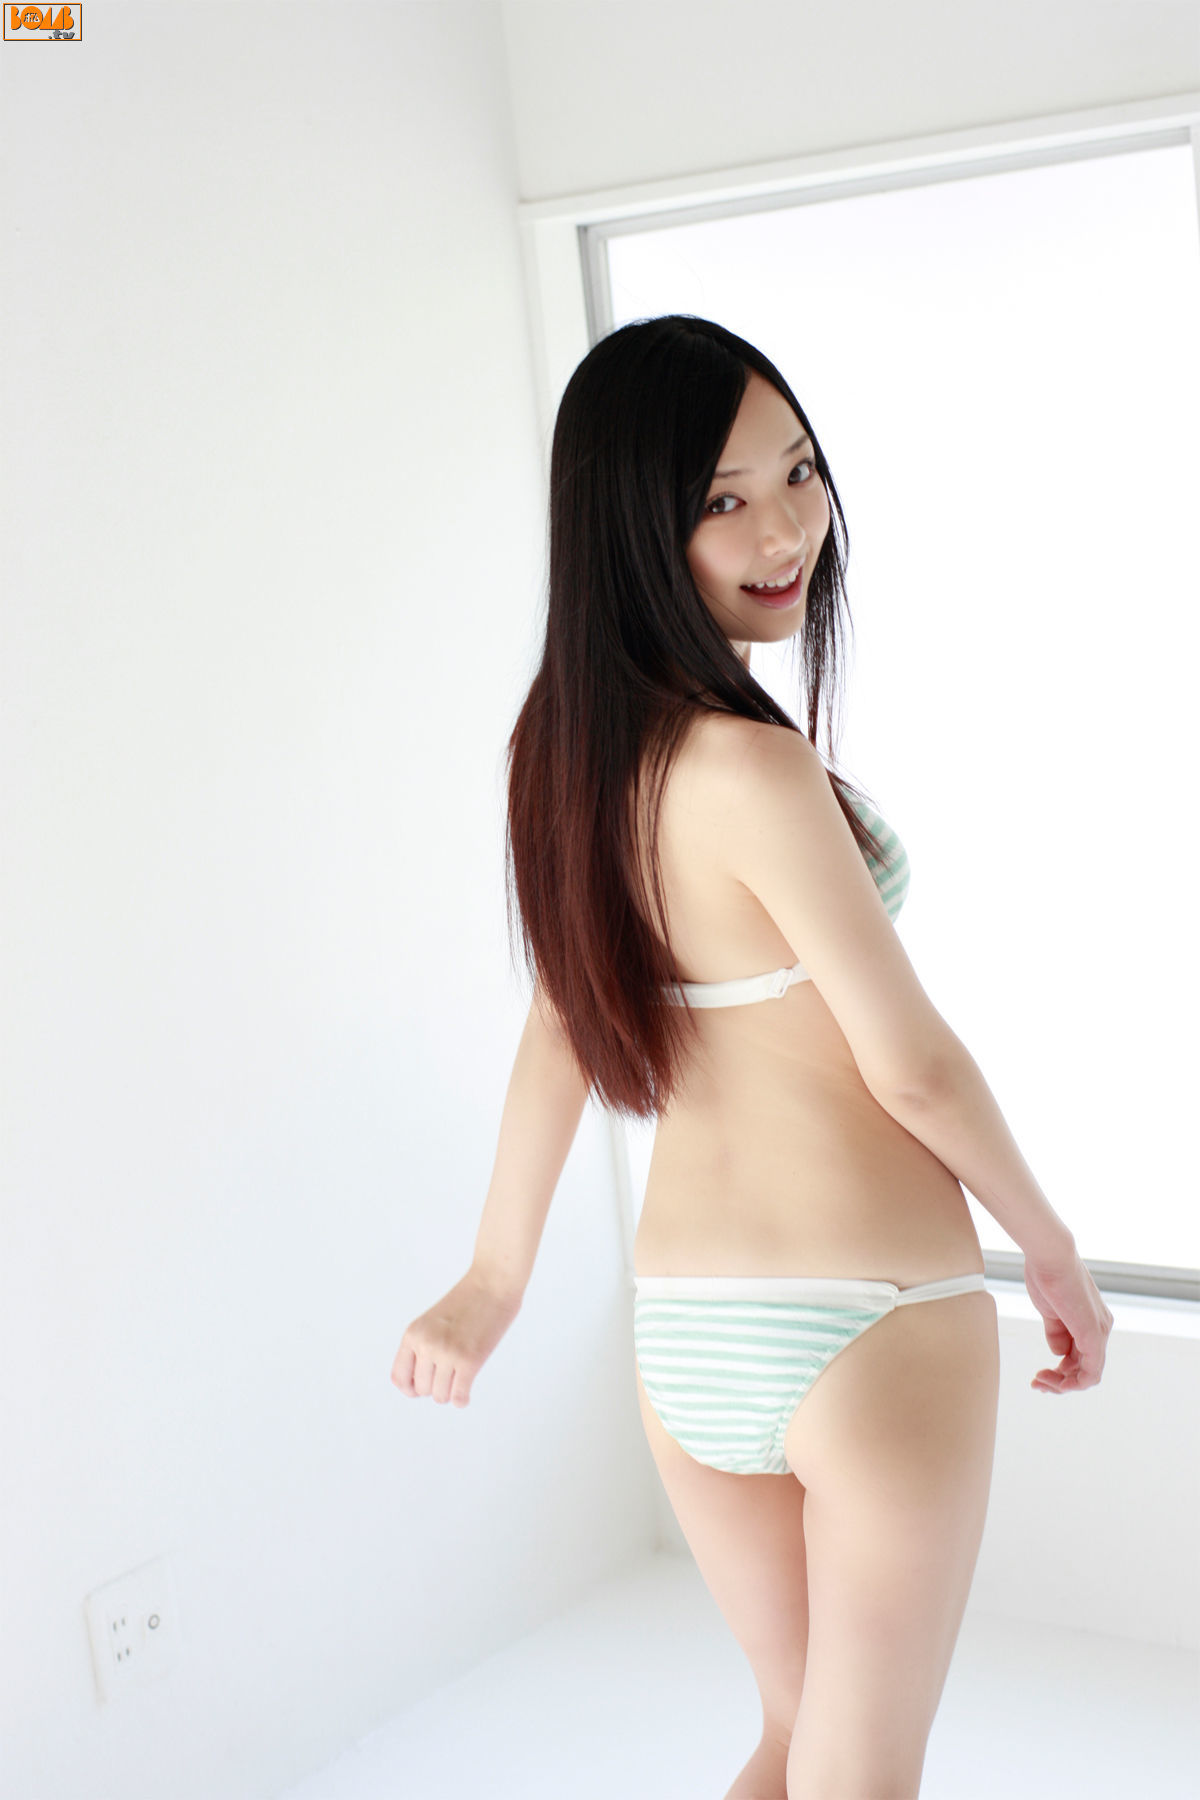 The ultimate swimsuit gravure for the next generation009